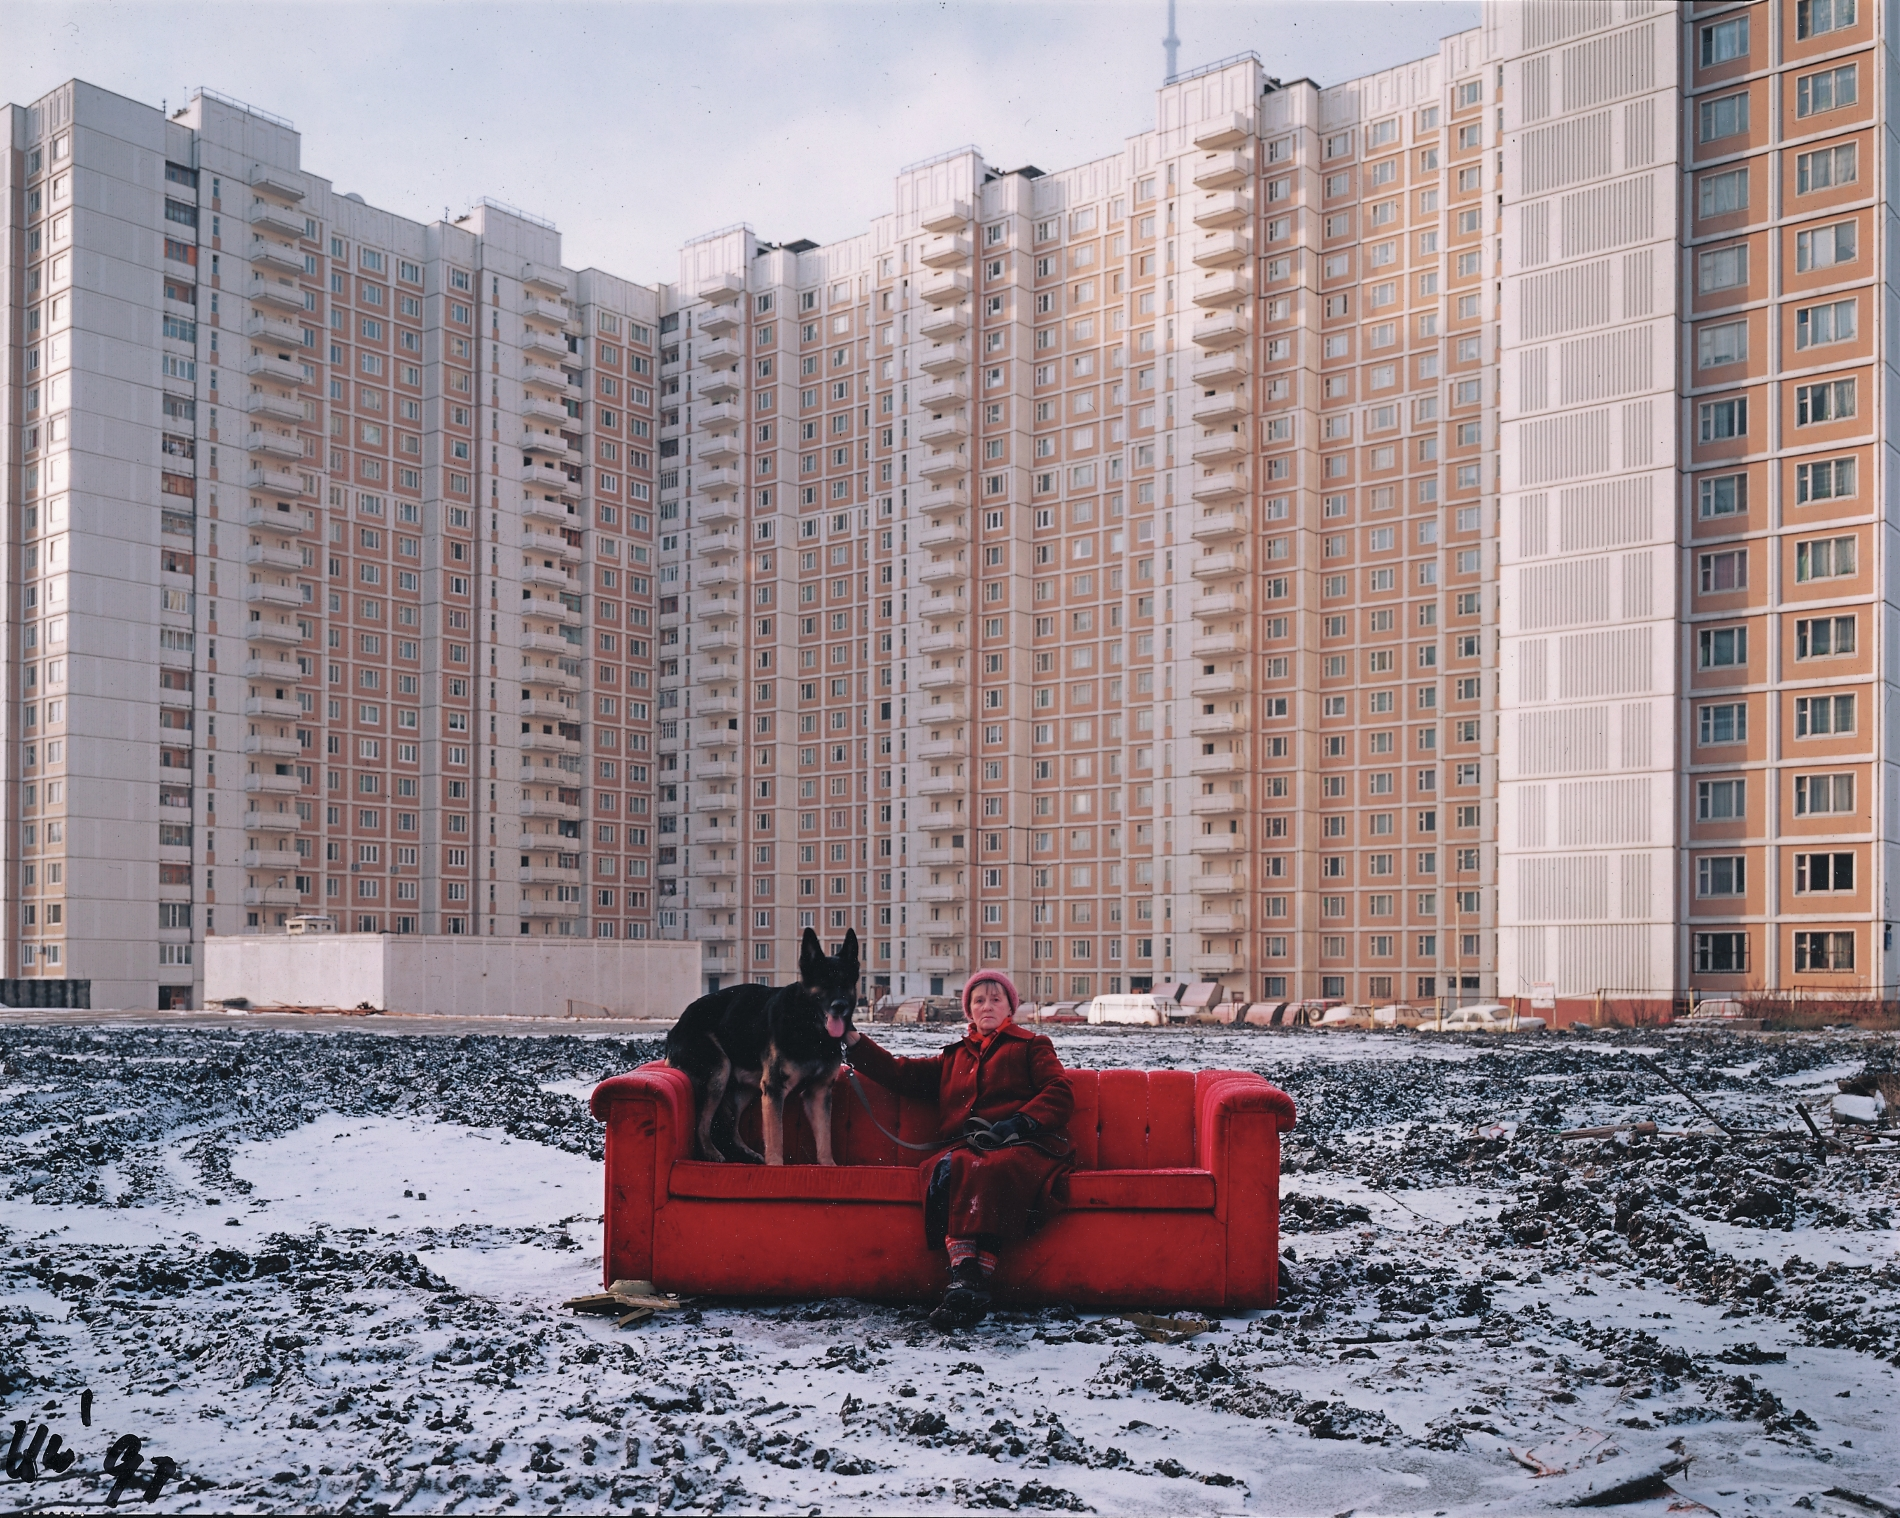 Horst Wackerbarth / Nina Sharova: from the video installation Happiness, 2013, and the Red Couch Project - A Gallery of Mankind